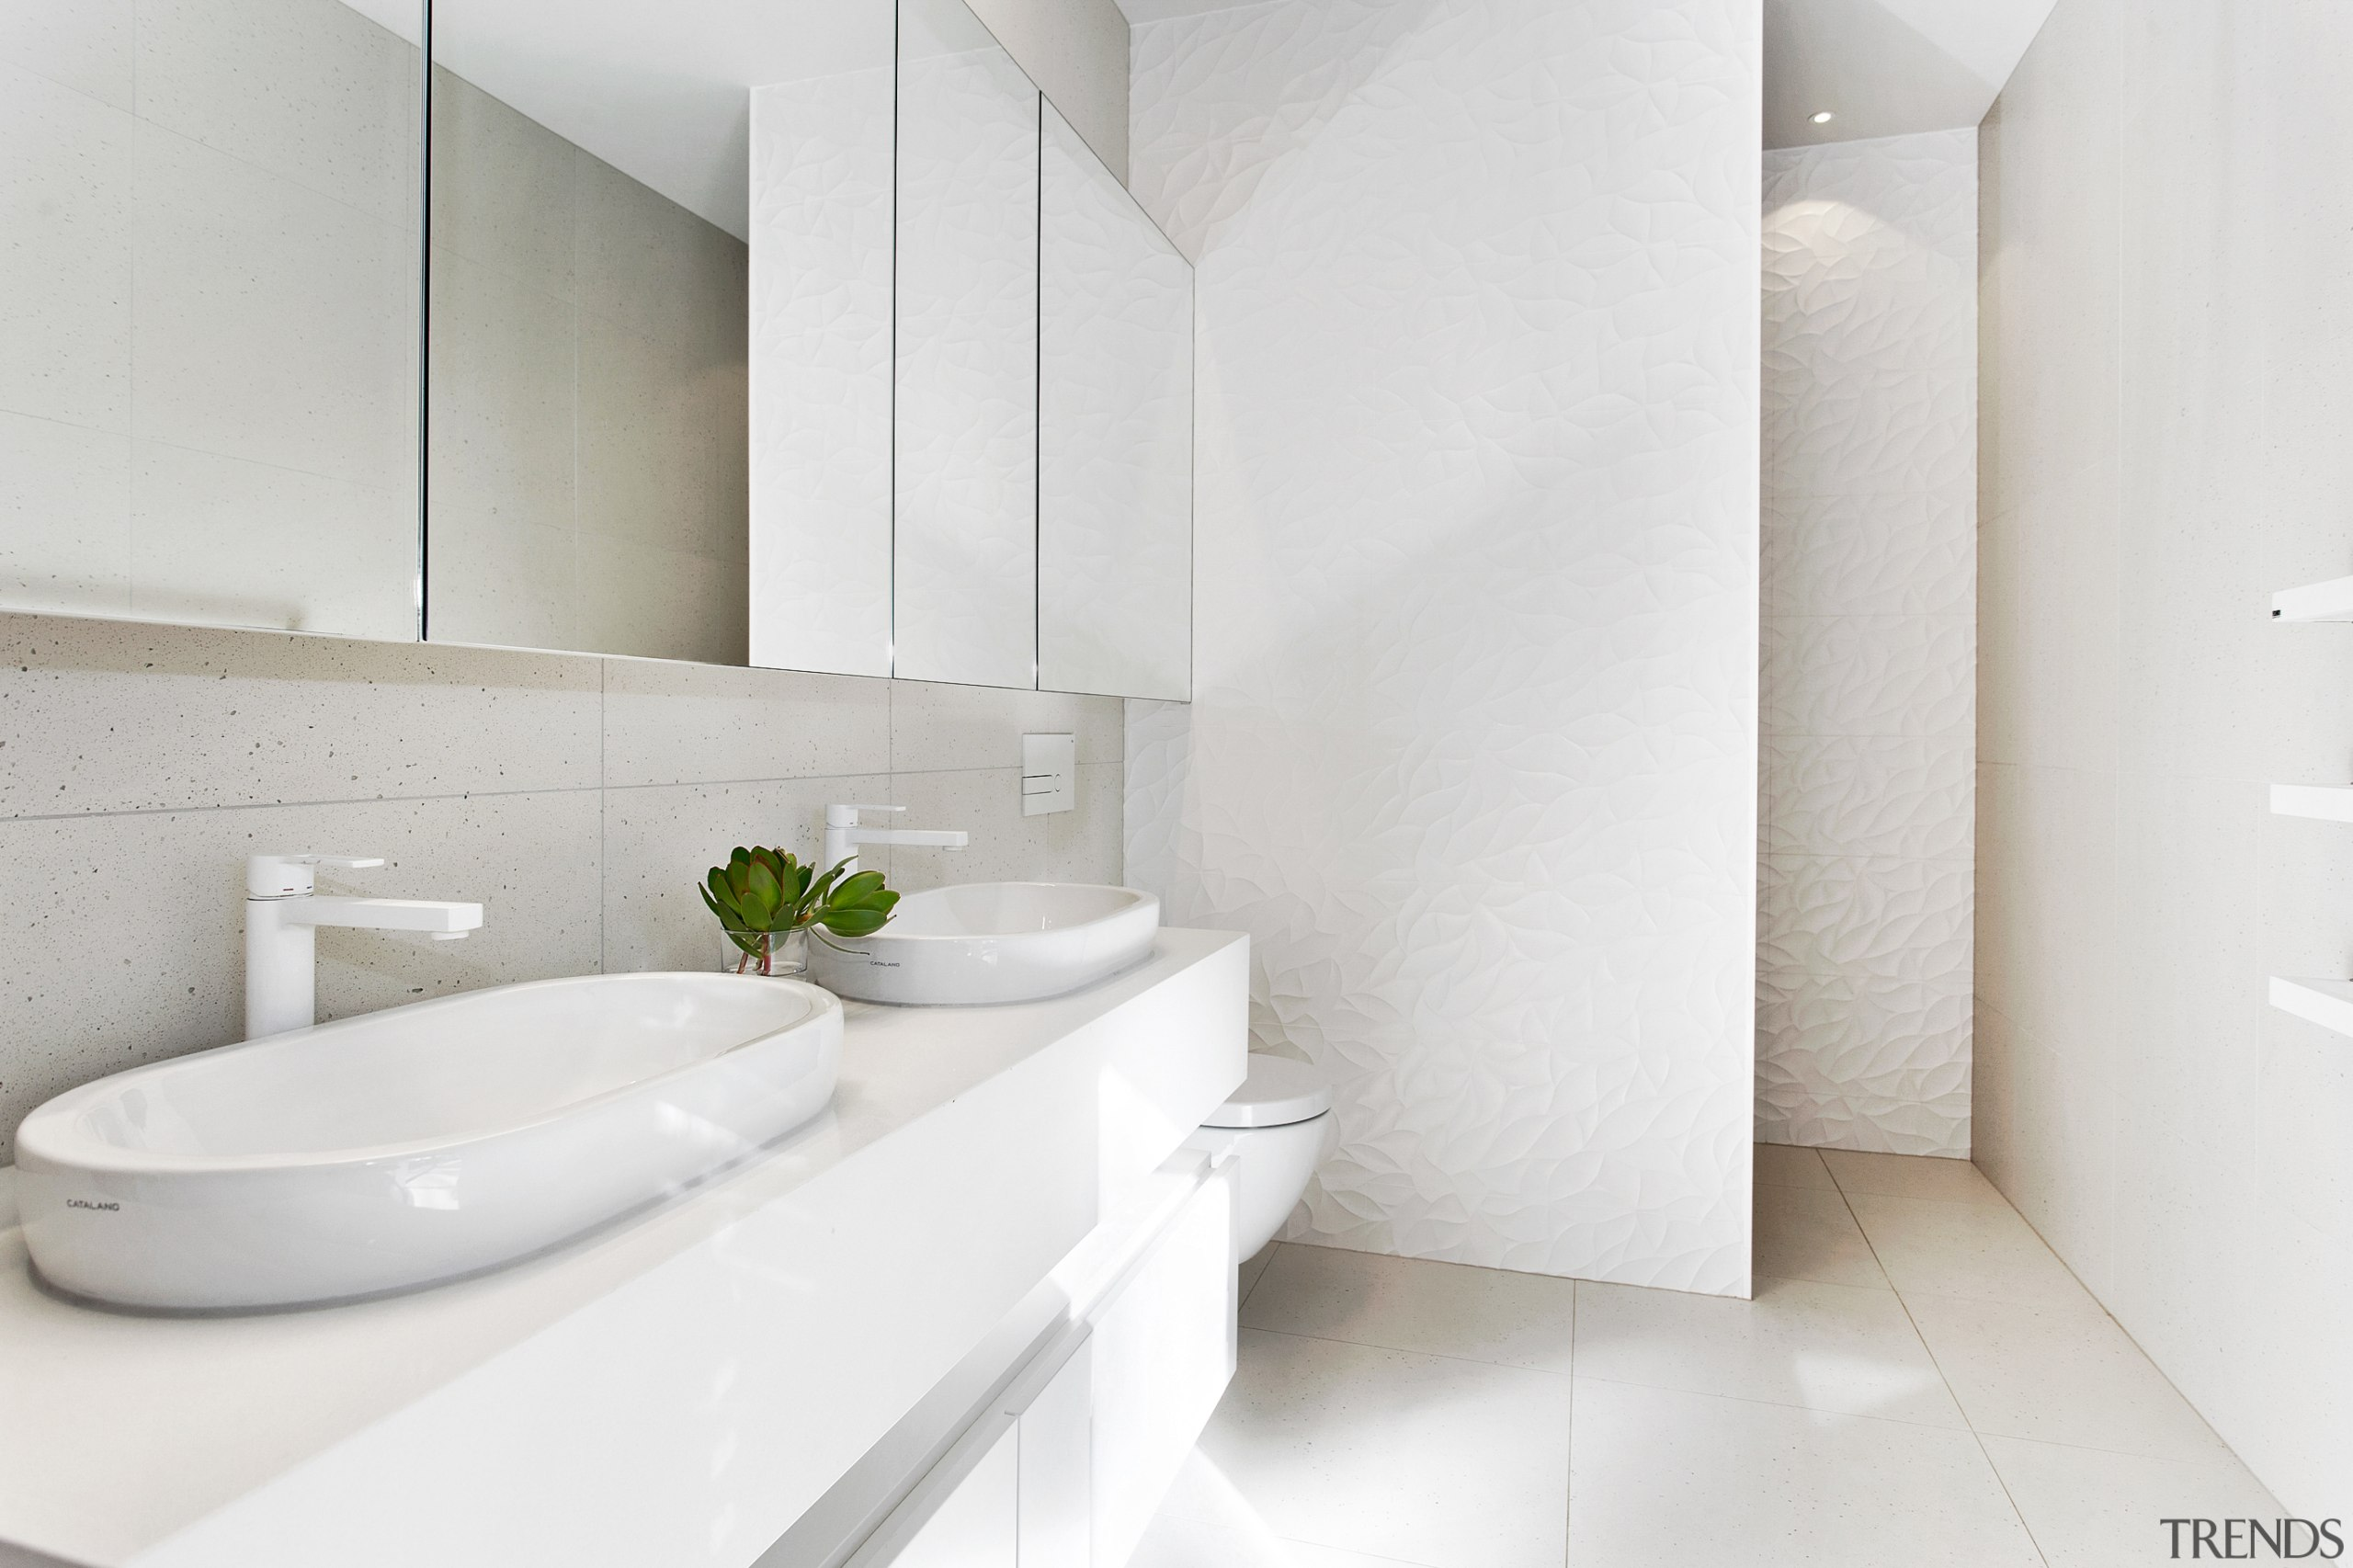 A green leaf in a white space – architecture, bathroom, ensuite, bathtub, ceramic, floor, flooring, house, interior design, plumbing fixture, tap, tile, wall, white, O'Neil Architecture